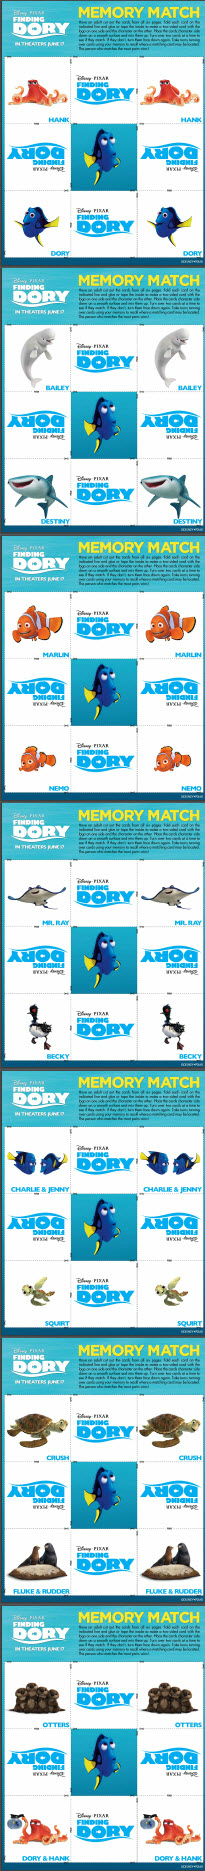 Finding Dory Memory Match Game Free Printable Downloadable